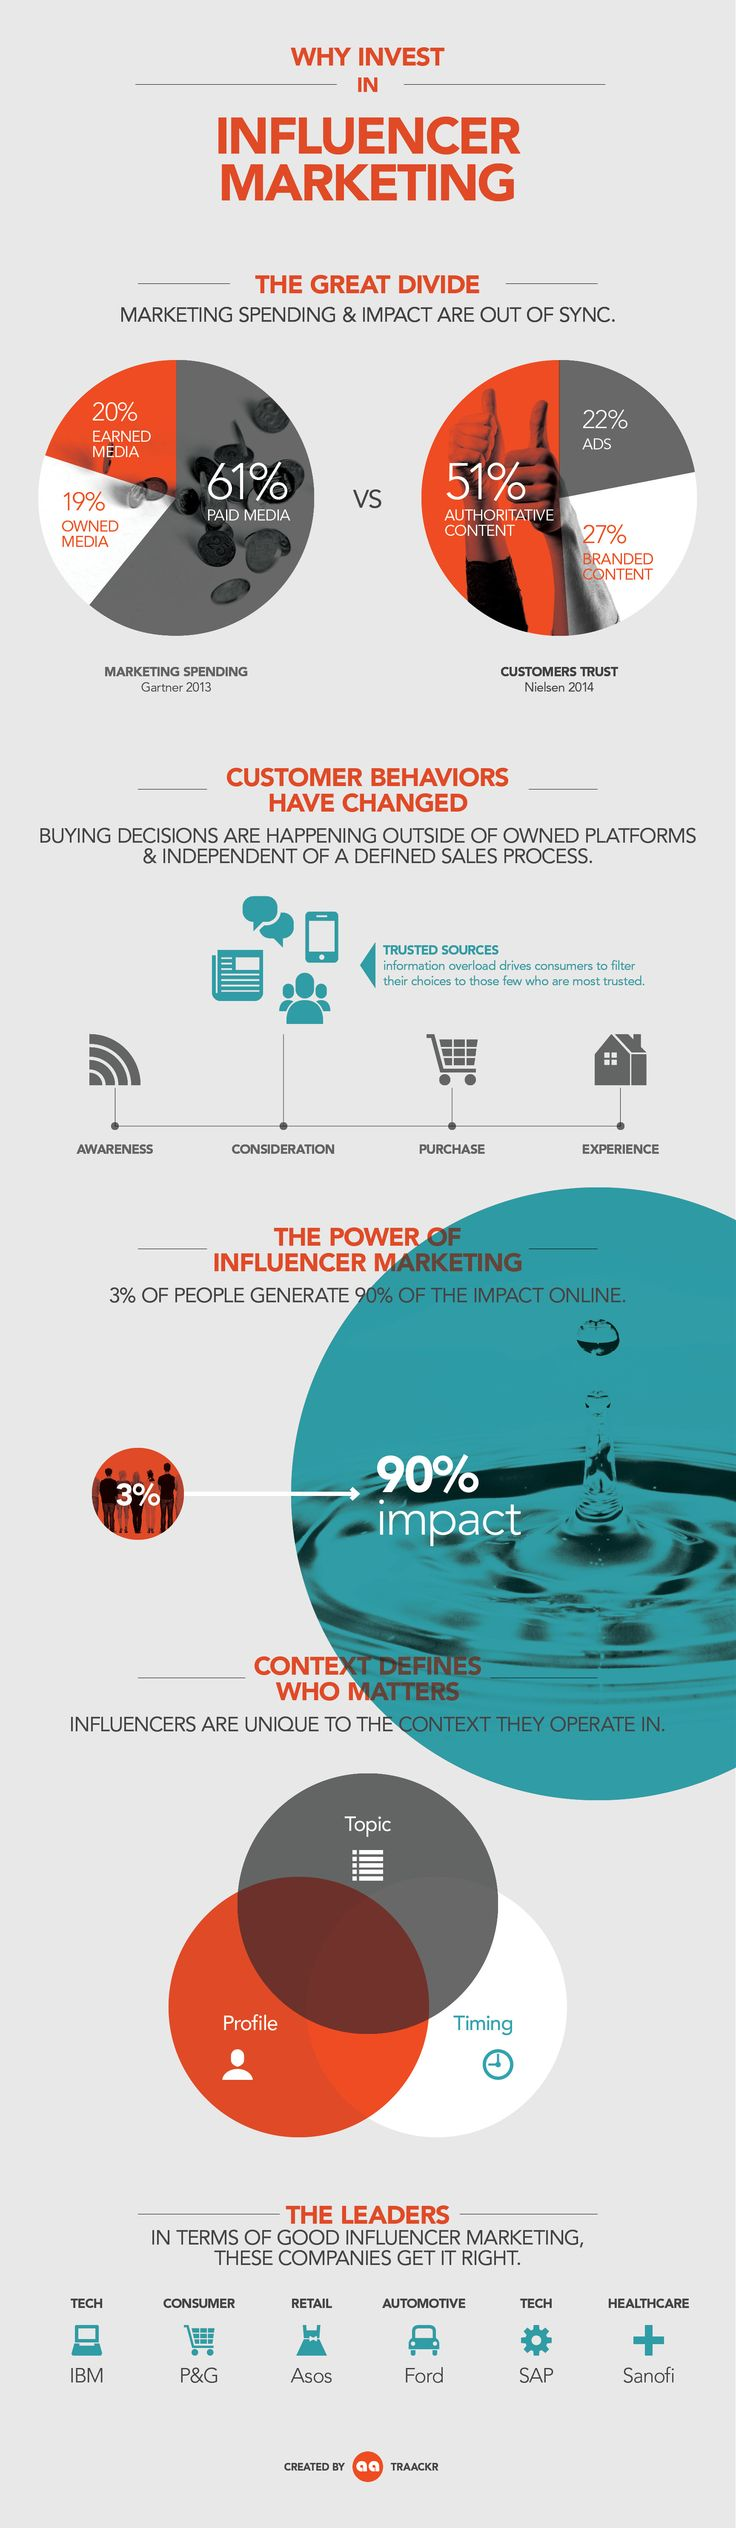 Why Invest in Influence Marketing #infographic #Marketing #Business http://www.intelisystems.com